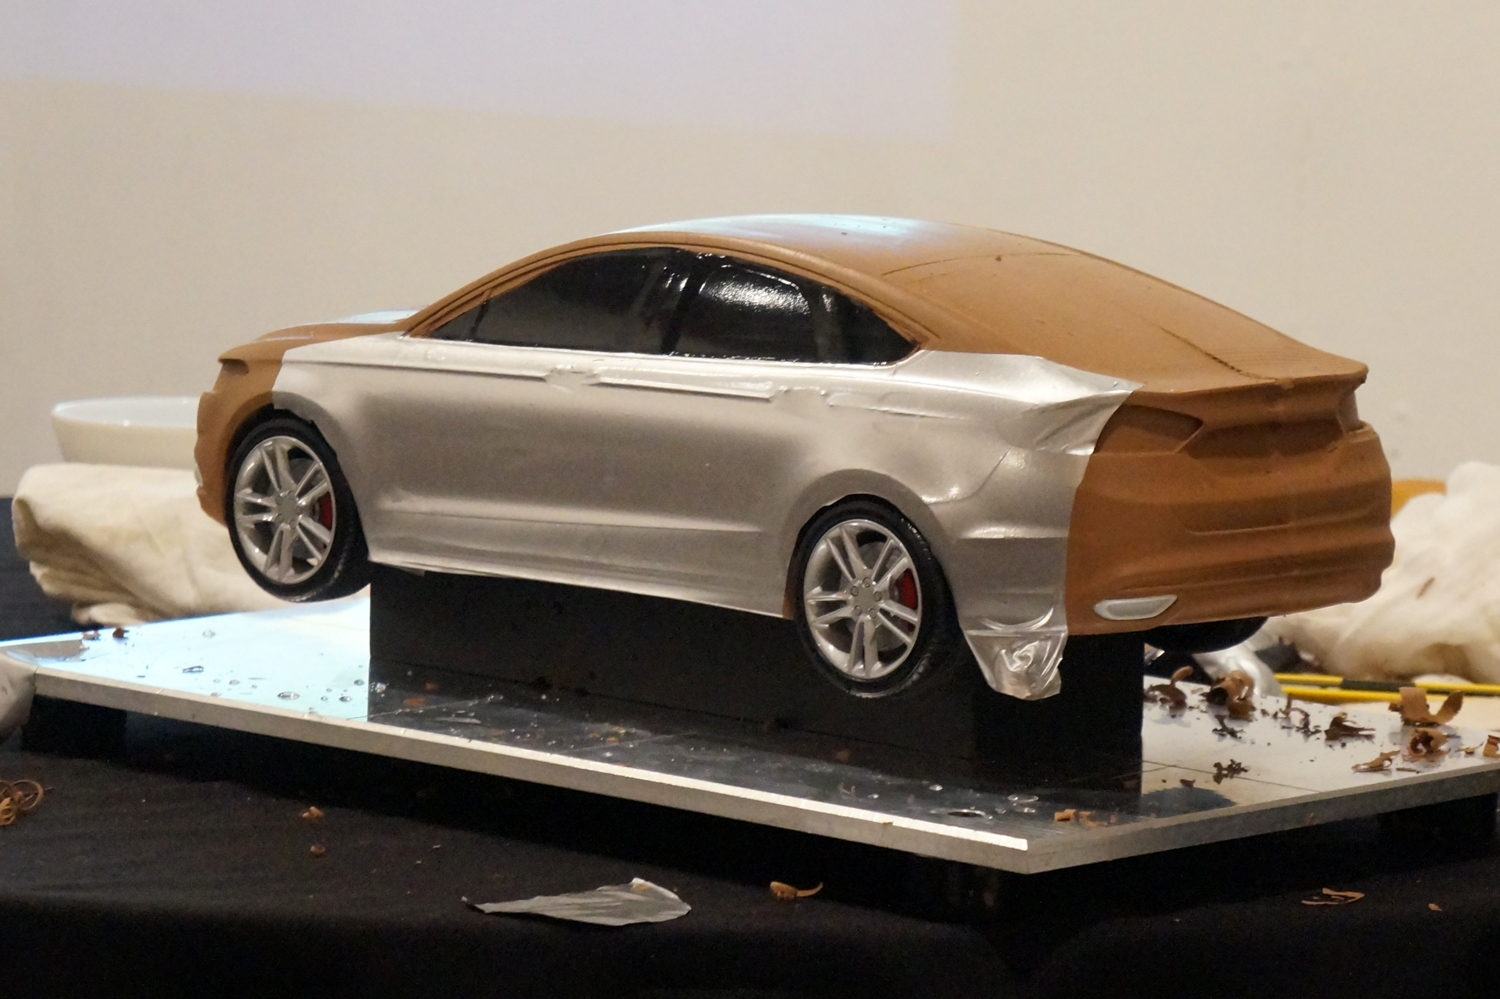 Design of car model - None Of The Designs Start Life There Surfaces Are Always Taken From What S Been Created By Hand In Clay